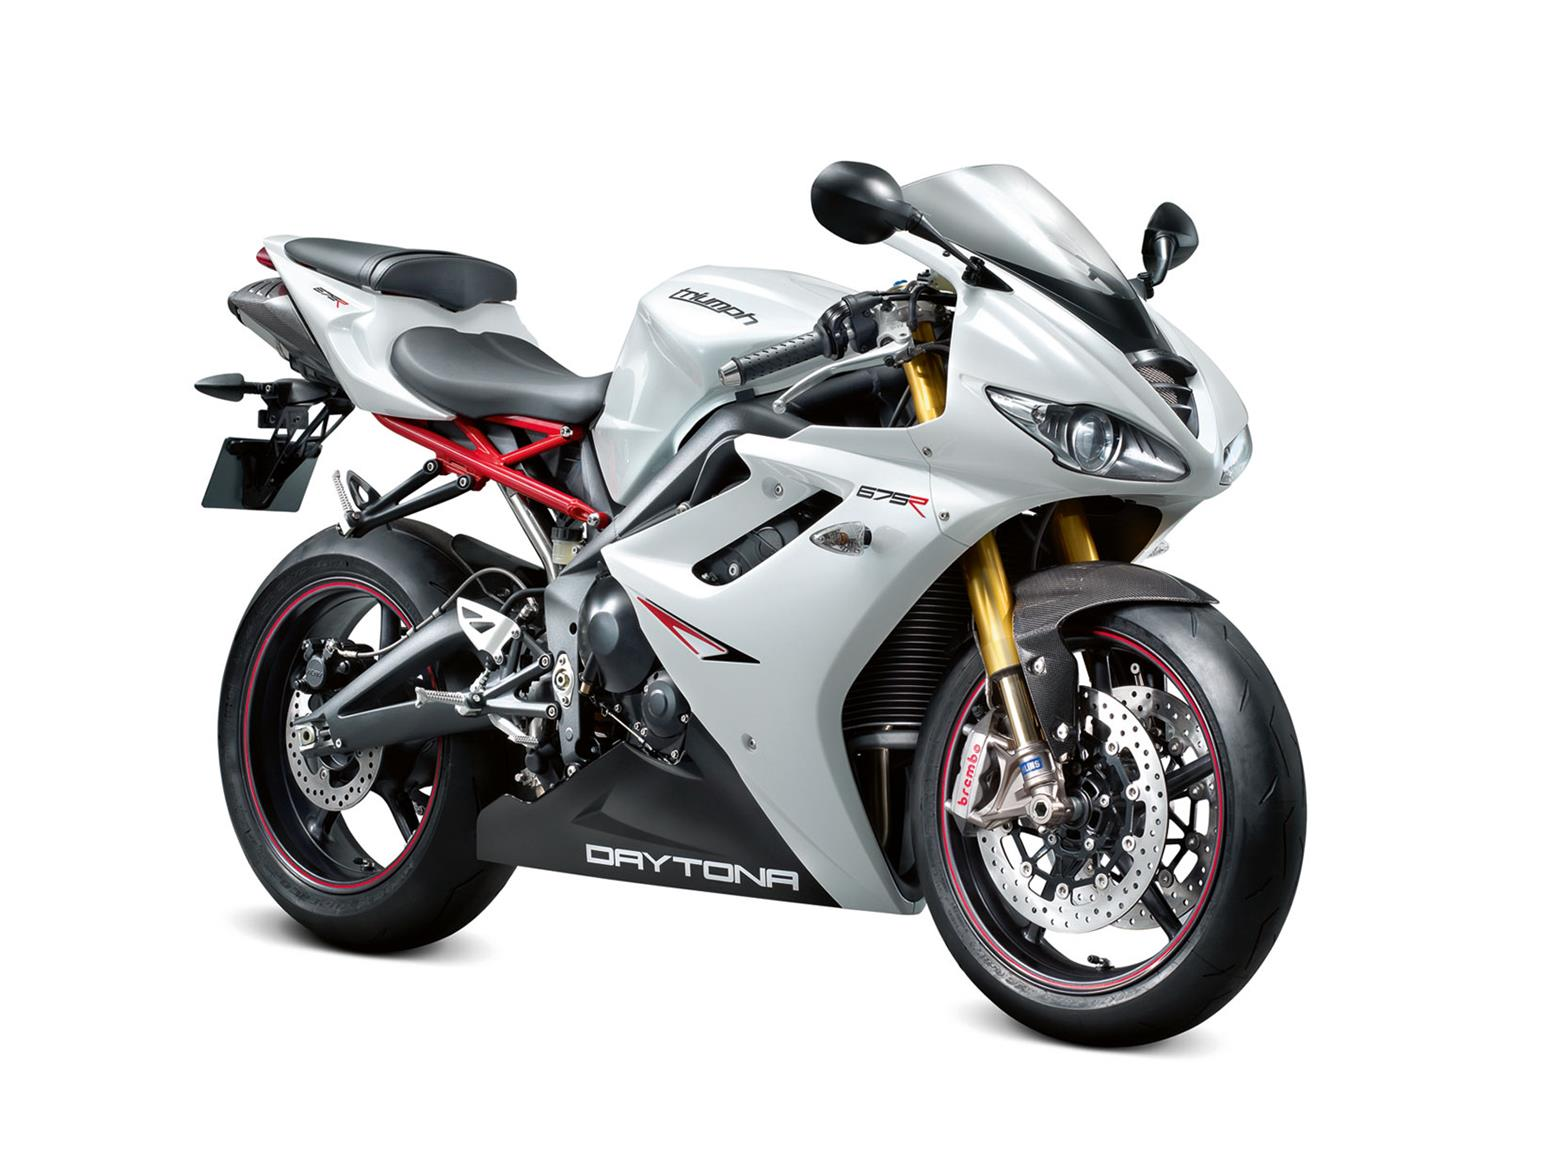 Triumph Daytona 675 R 2011 2012 Motorcycle Review Mcn